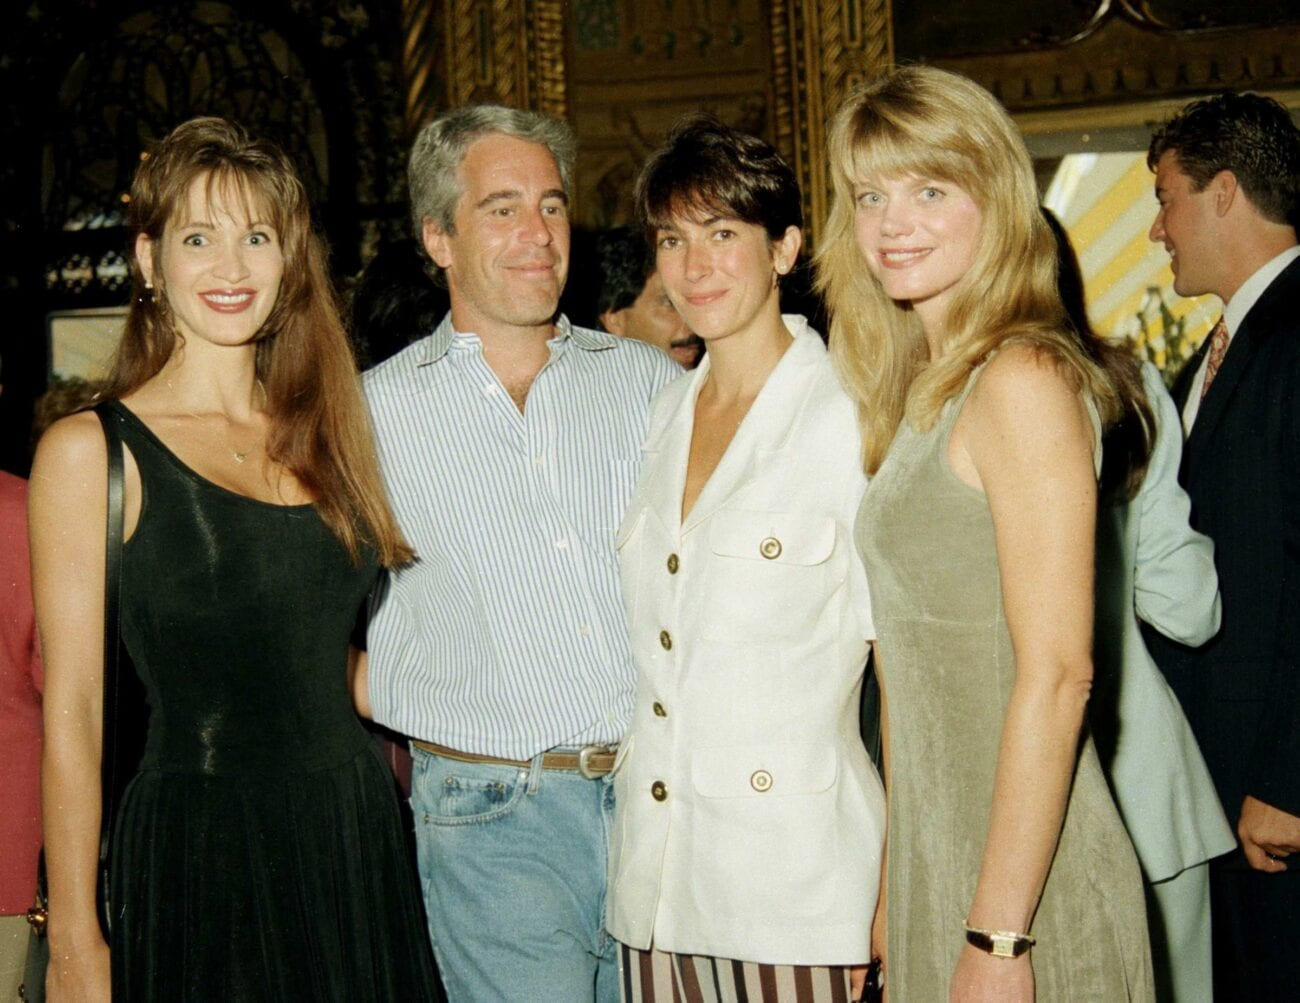 Ghislaine Maxwell has been charged with aiding Jeffrey Epstein in his sexual abuse. But how did Maxwell recruit these young girls?